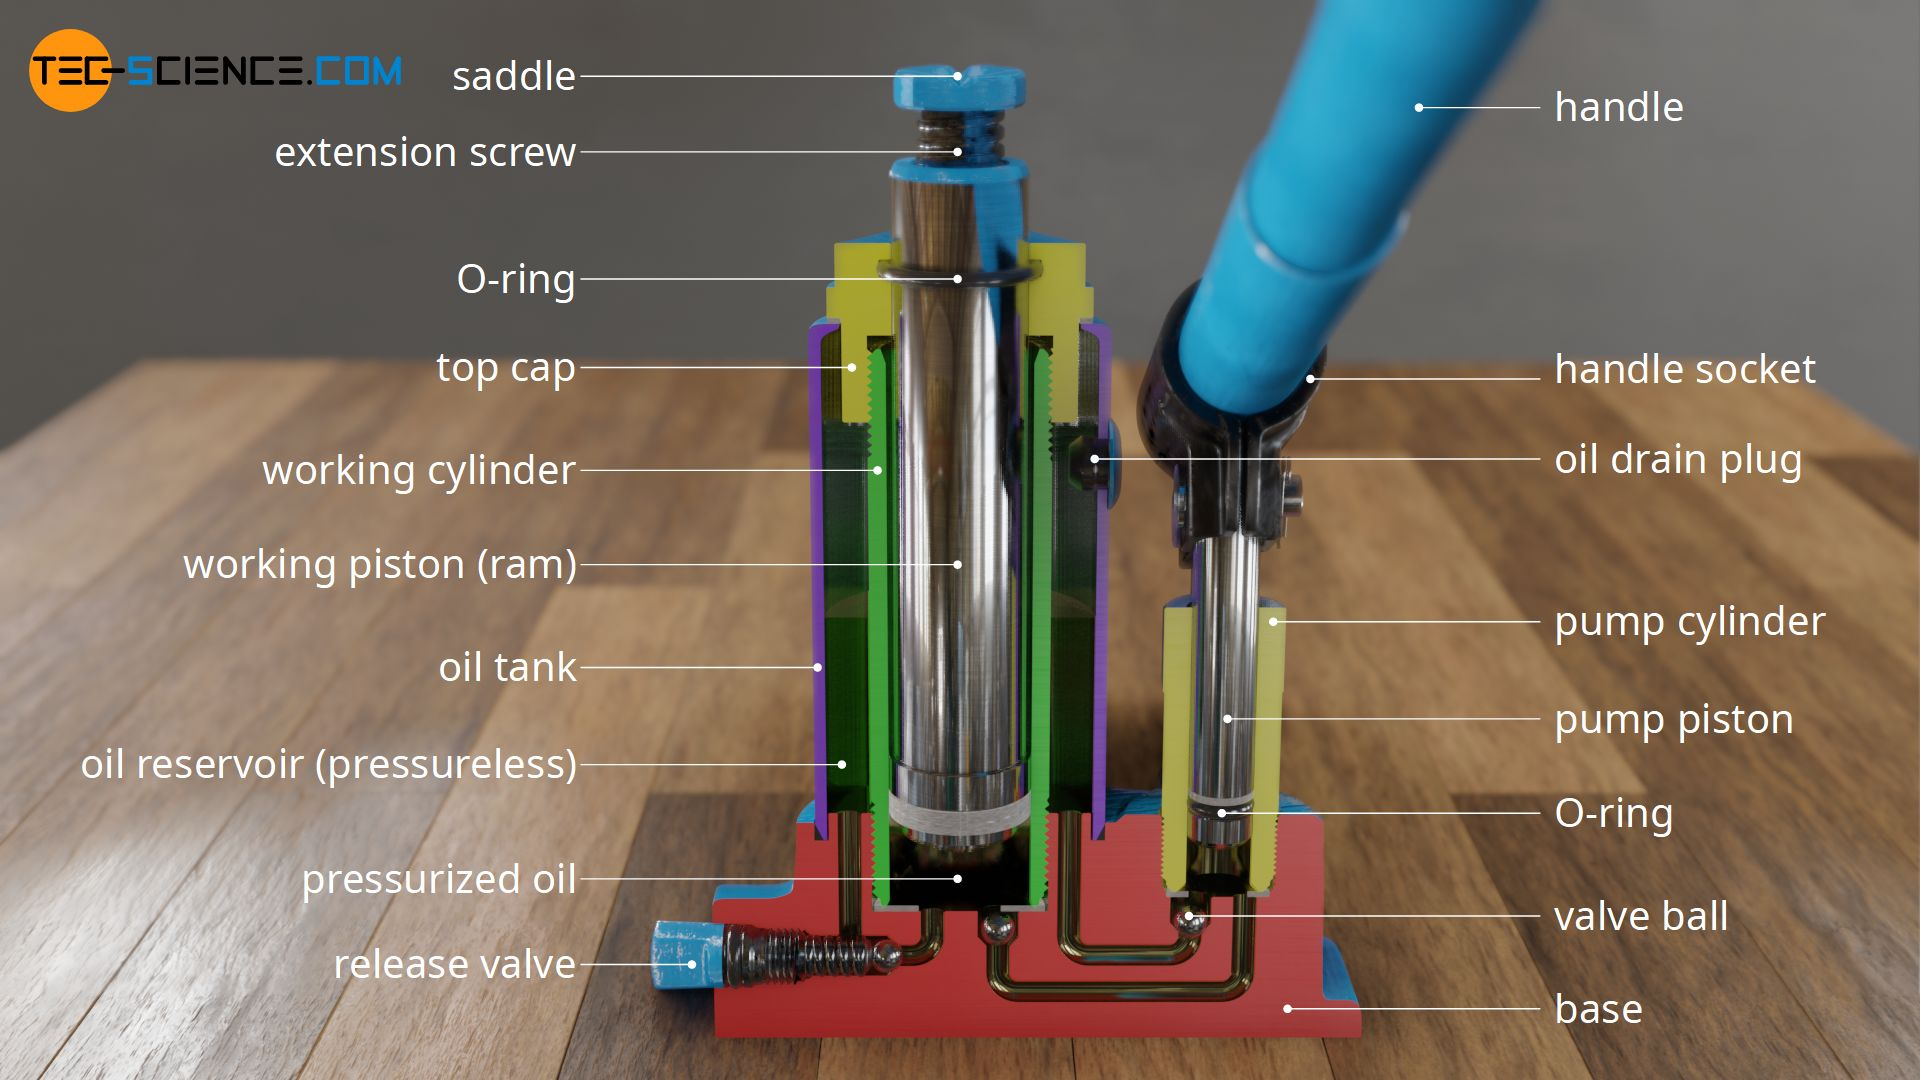 Design and components of a hydraulic bottle jack (sectional view)